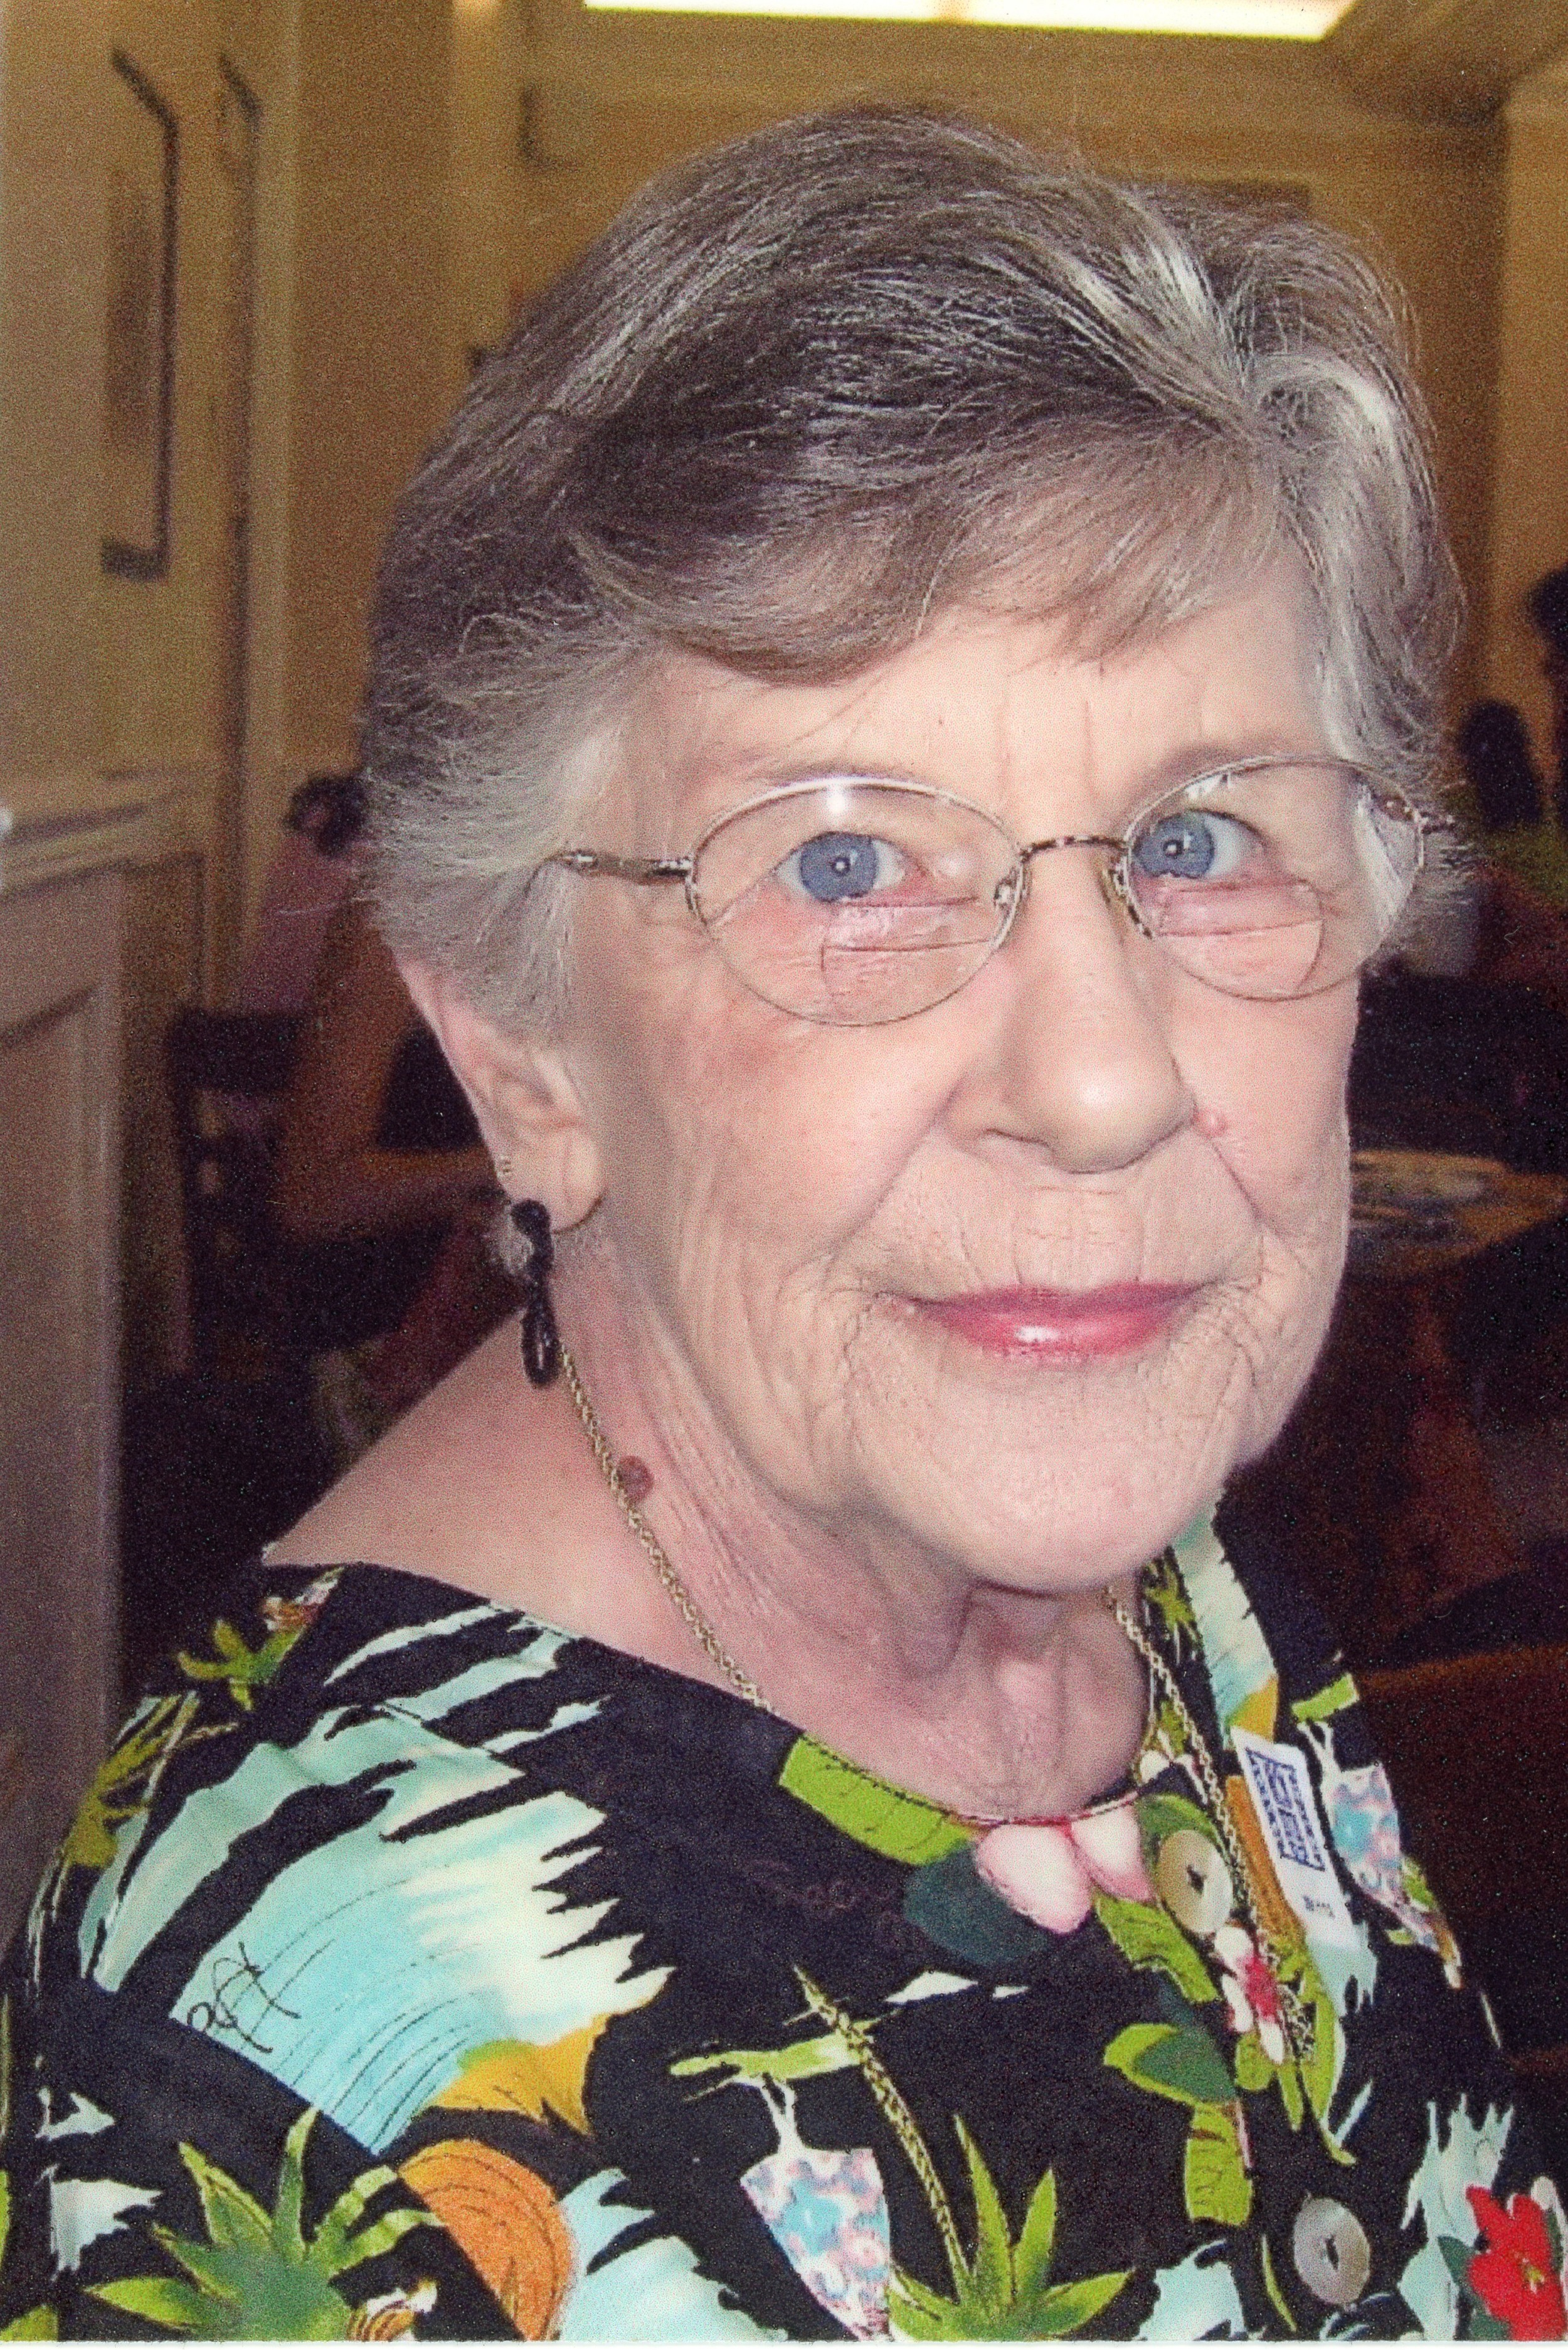 Marilyn Tuggle passed away April 18 at age 79.